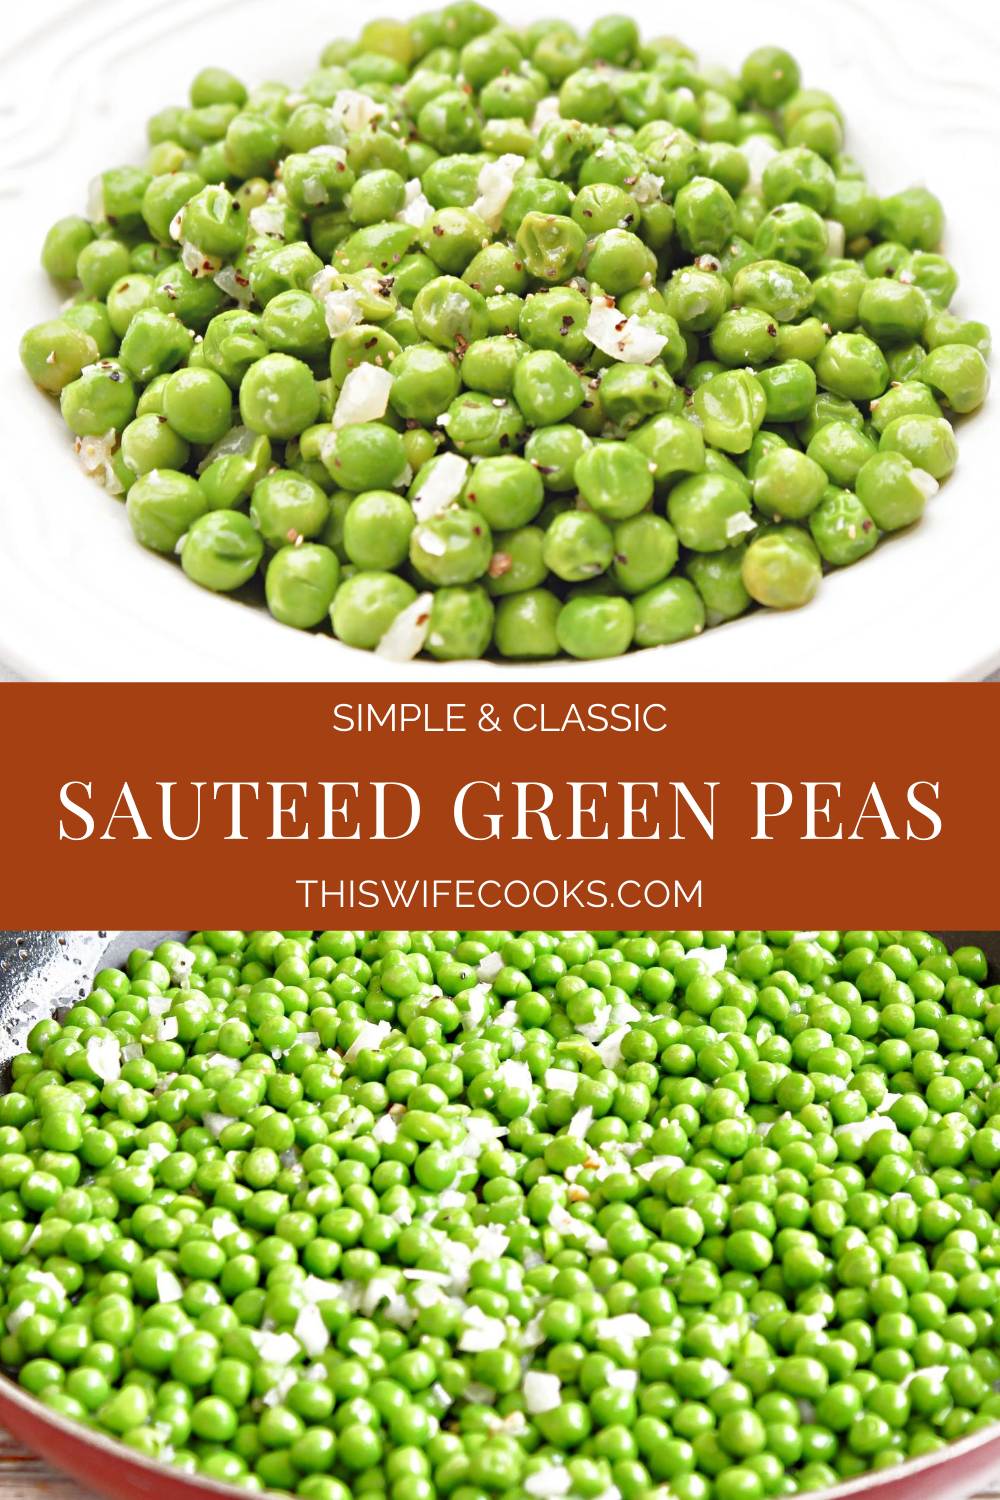 Green Peas ~ Boost the flavor of a bag of frozen peas with sauteed onions, garlic, and simple seasonings. An easy and classic side dish that works with a variety of cuisines. via @thiswifecooks